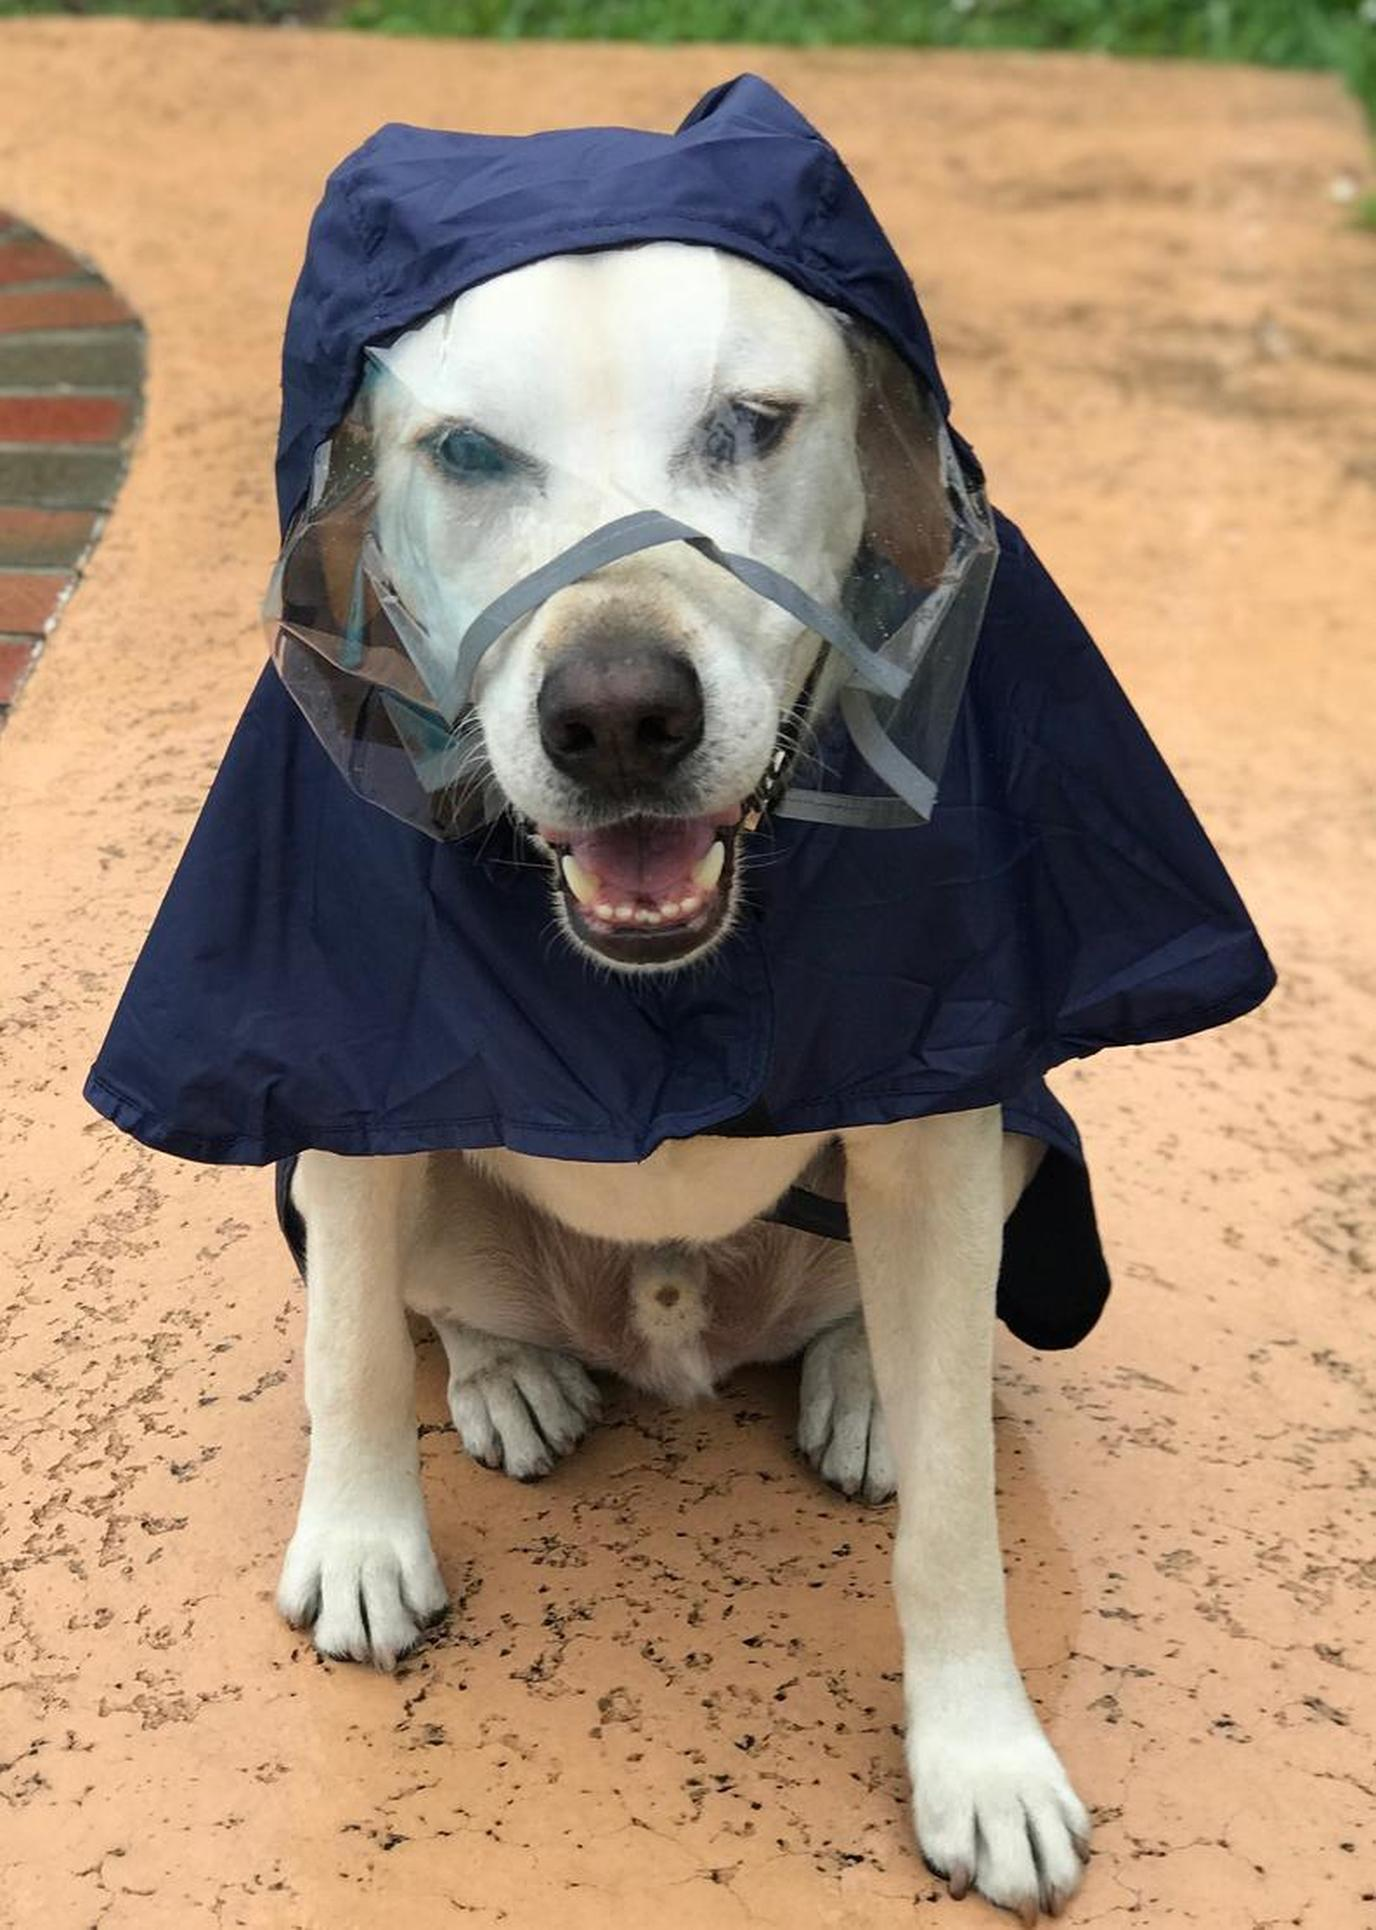 A Dog Wears a Rain Poncho from Paw2Paws.